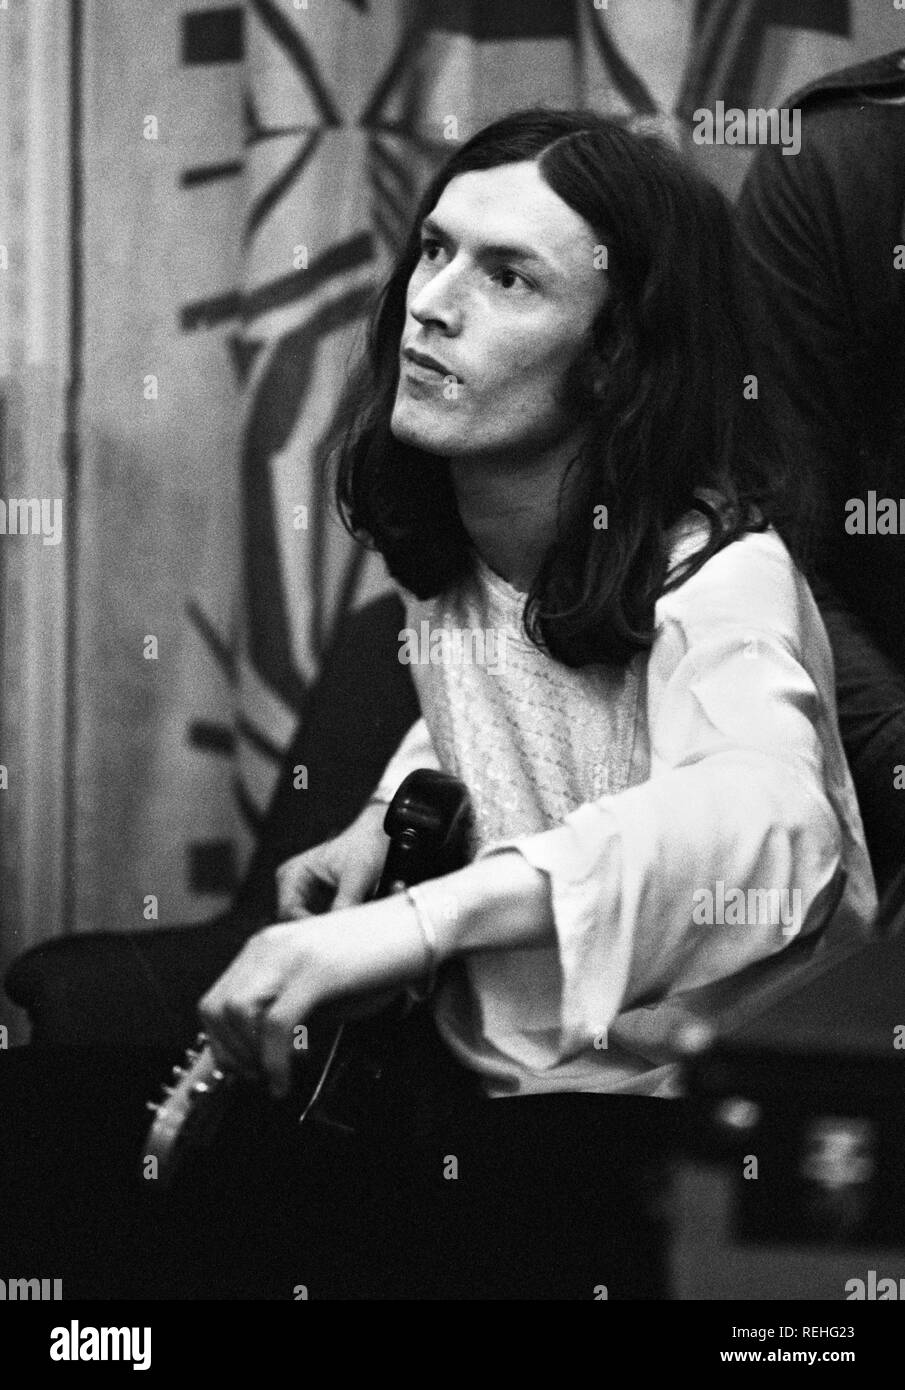 Amsterdam, Netherlands: Steve Winwood from Traffic performs live in Amsterdam, Netherlands in 1972 (Photo by Gijsbert Hanekroot) - Stock Image